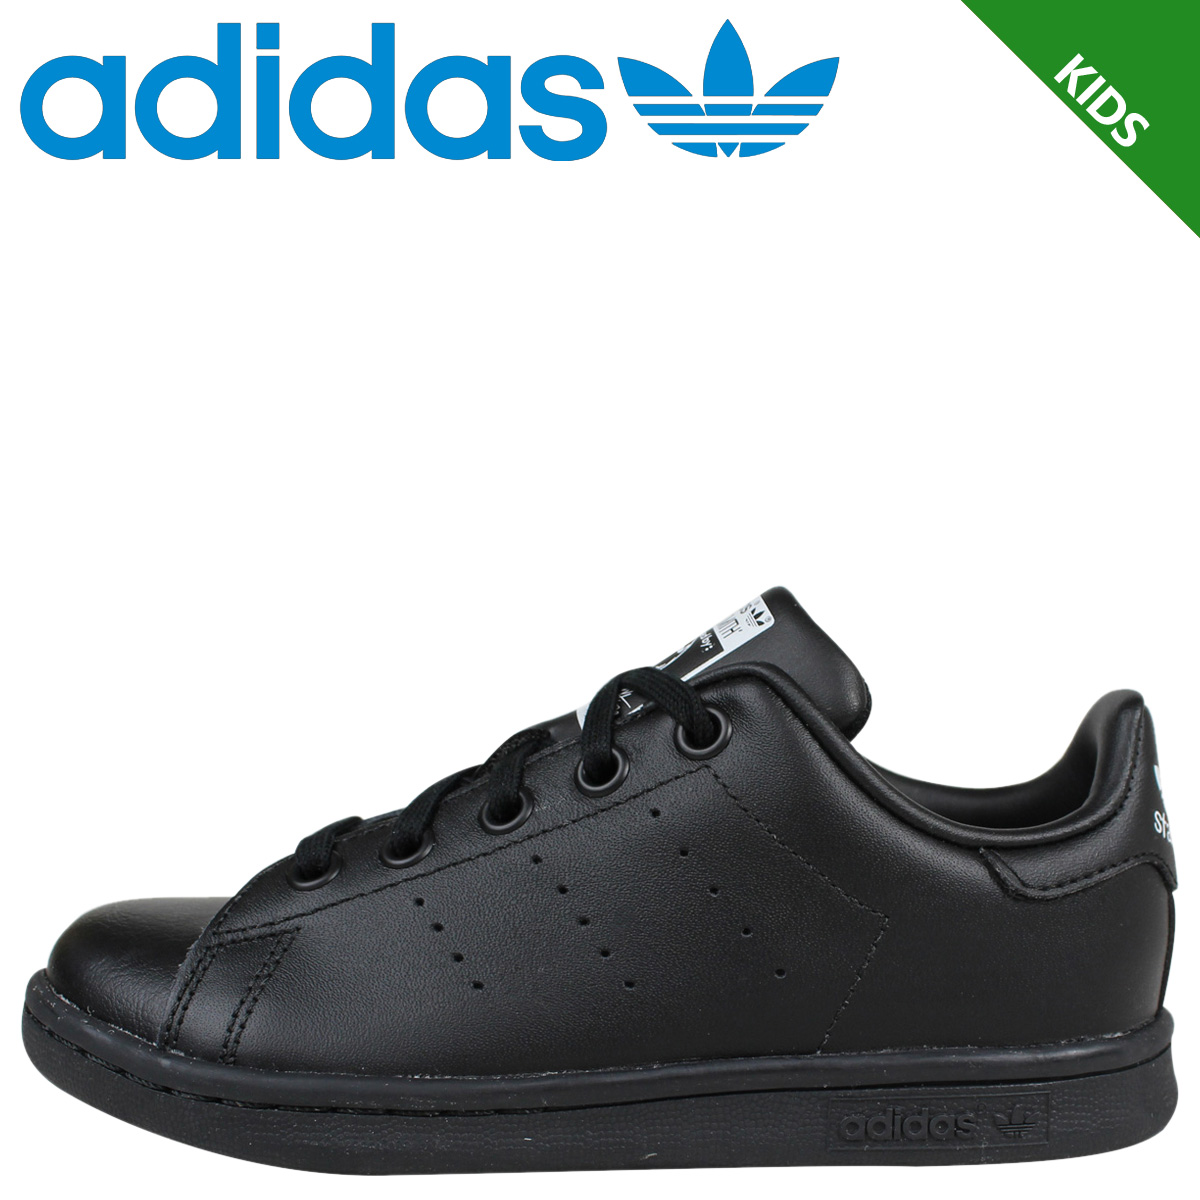 separation shoes 85183 3c942 adidas adidas Stan Smith sneakers kids STAN SMITH EL C BA8376 shoes black  [9/8 new in stock]